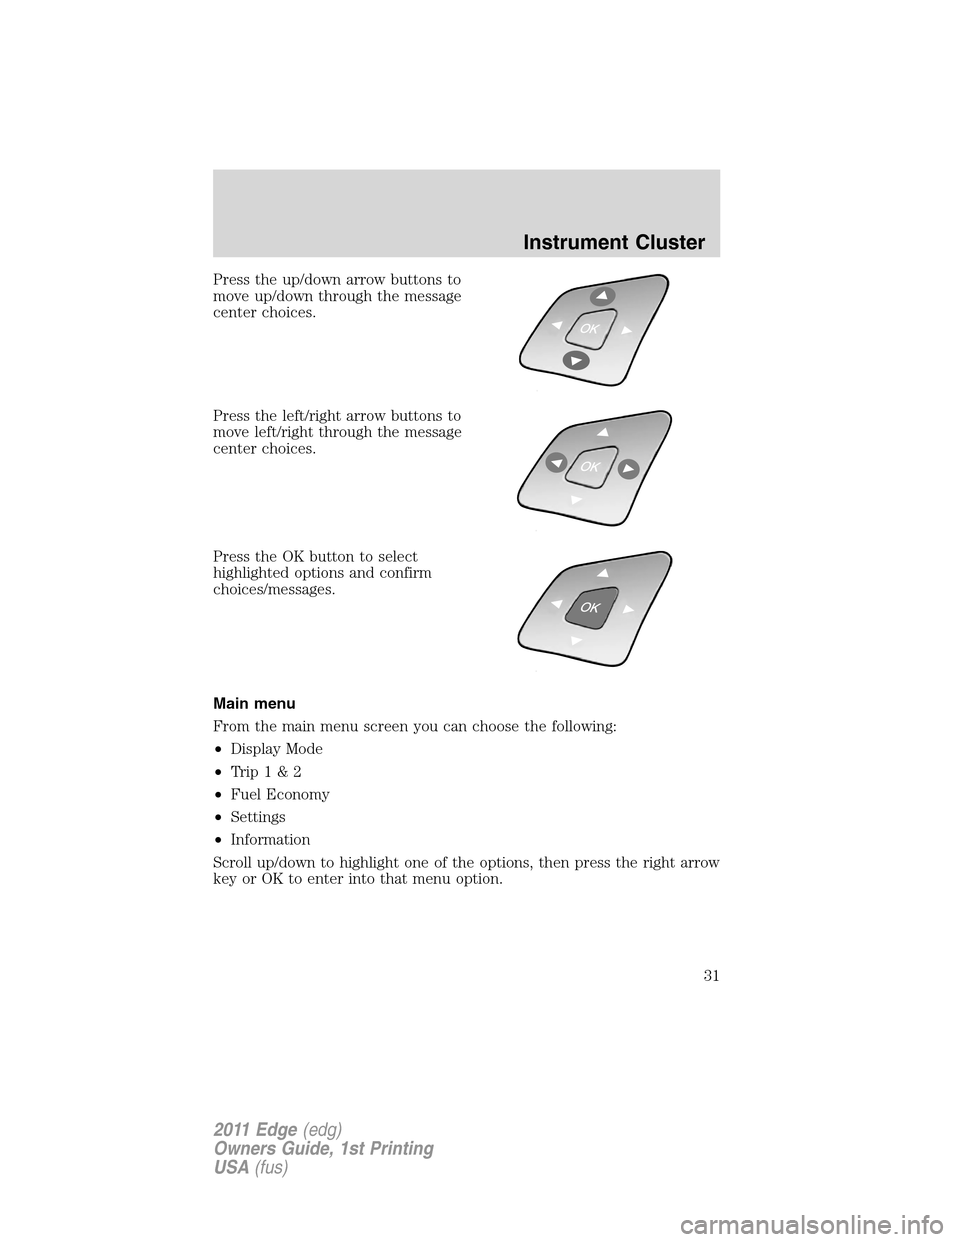 FORD EDGE 2011 1.G Owners Manual, Page 31